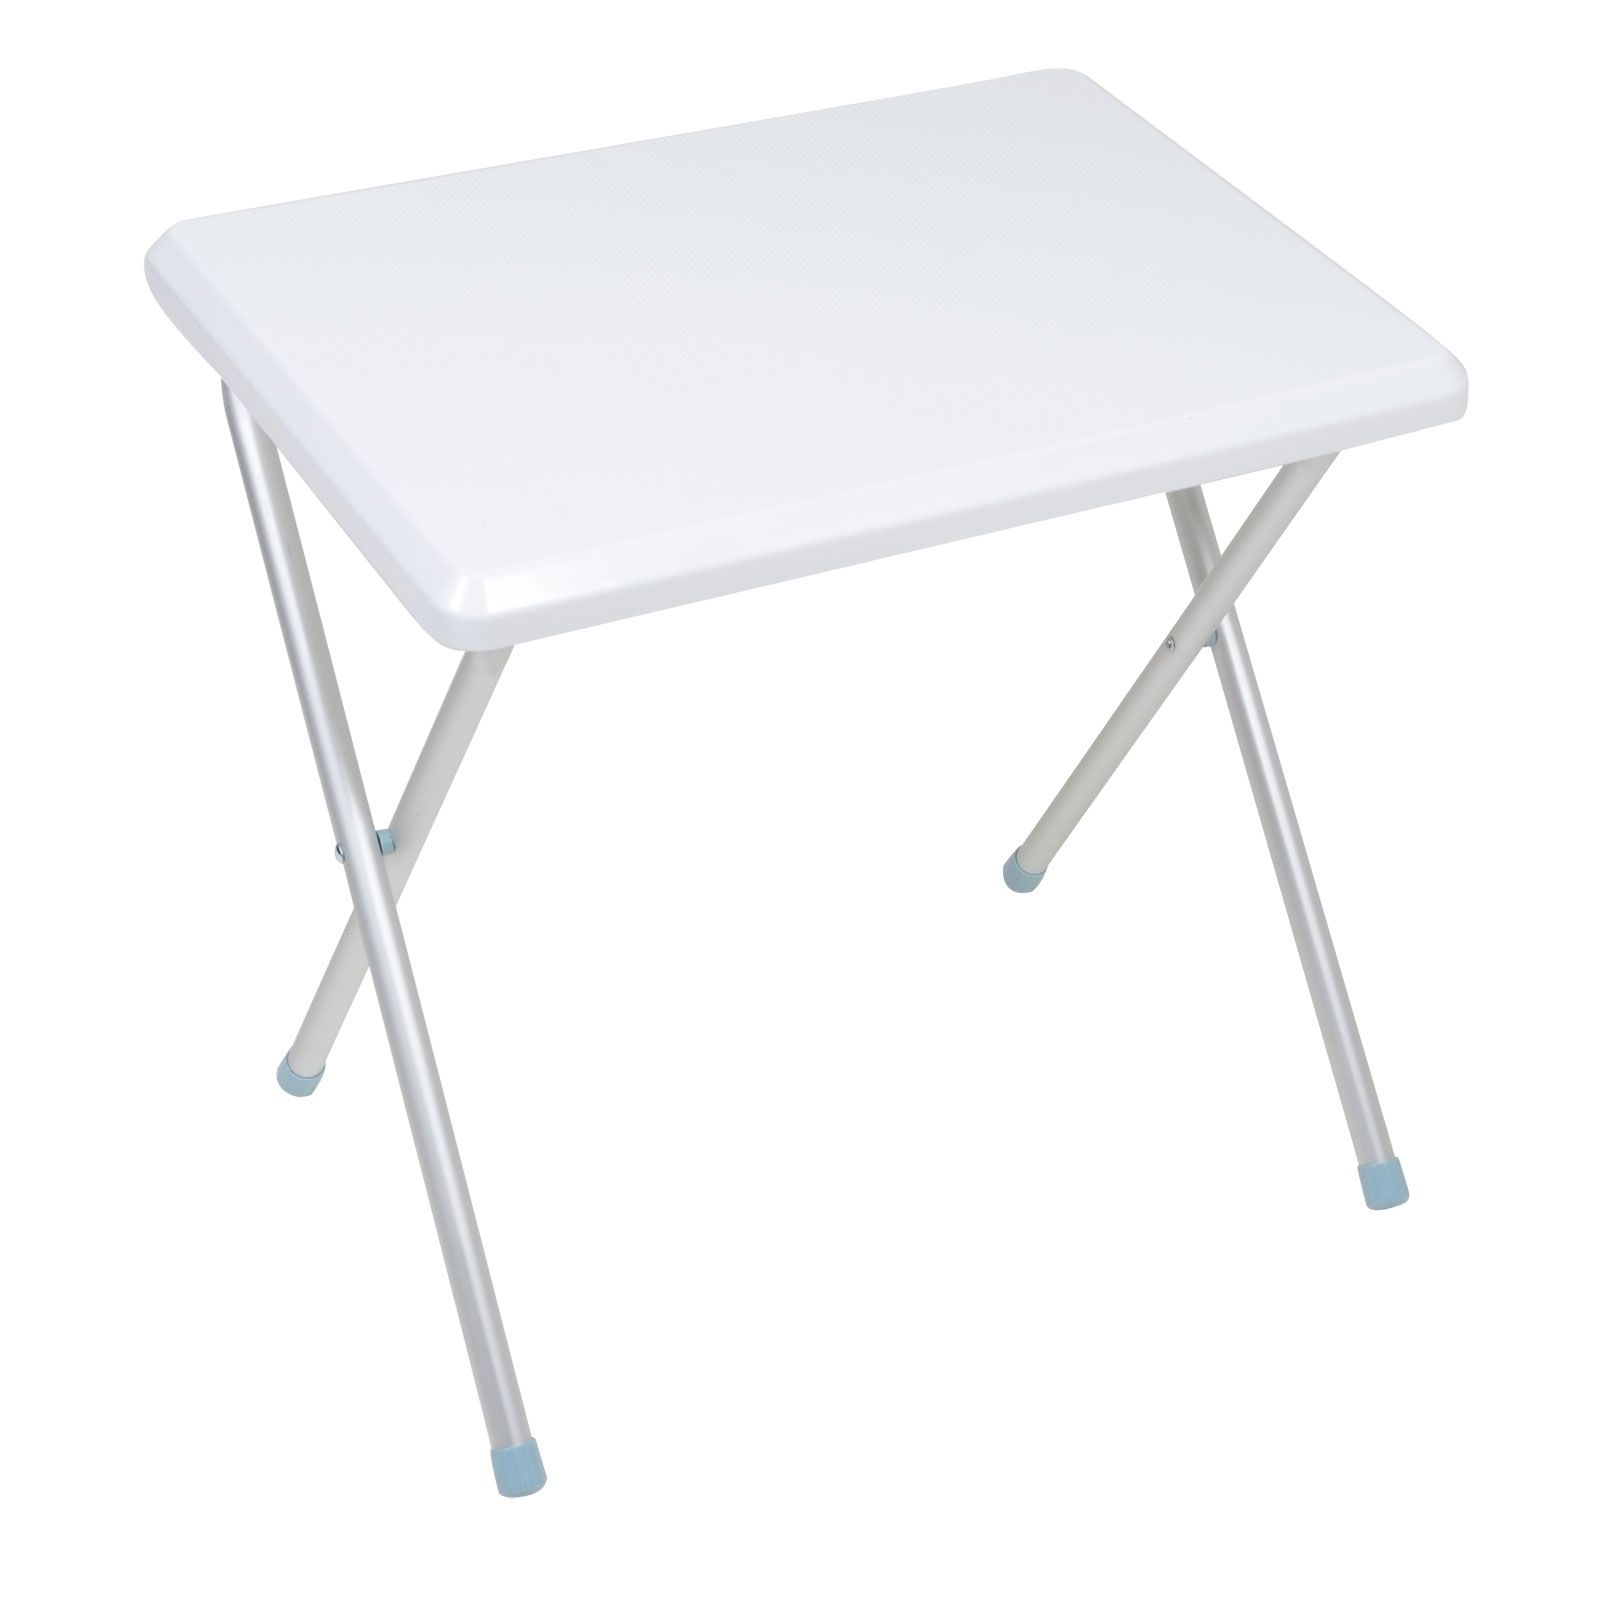 Small White Wooden Folding Table